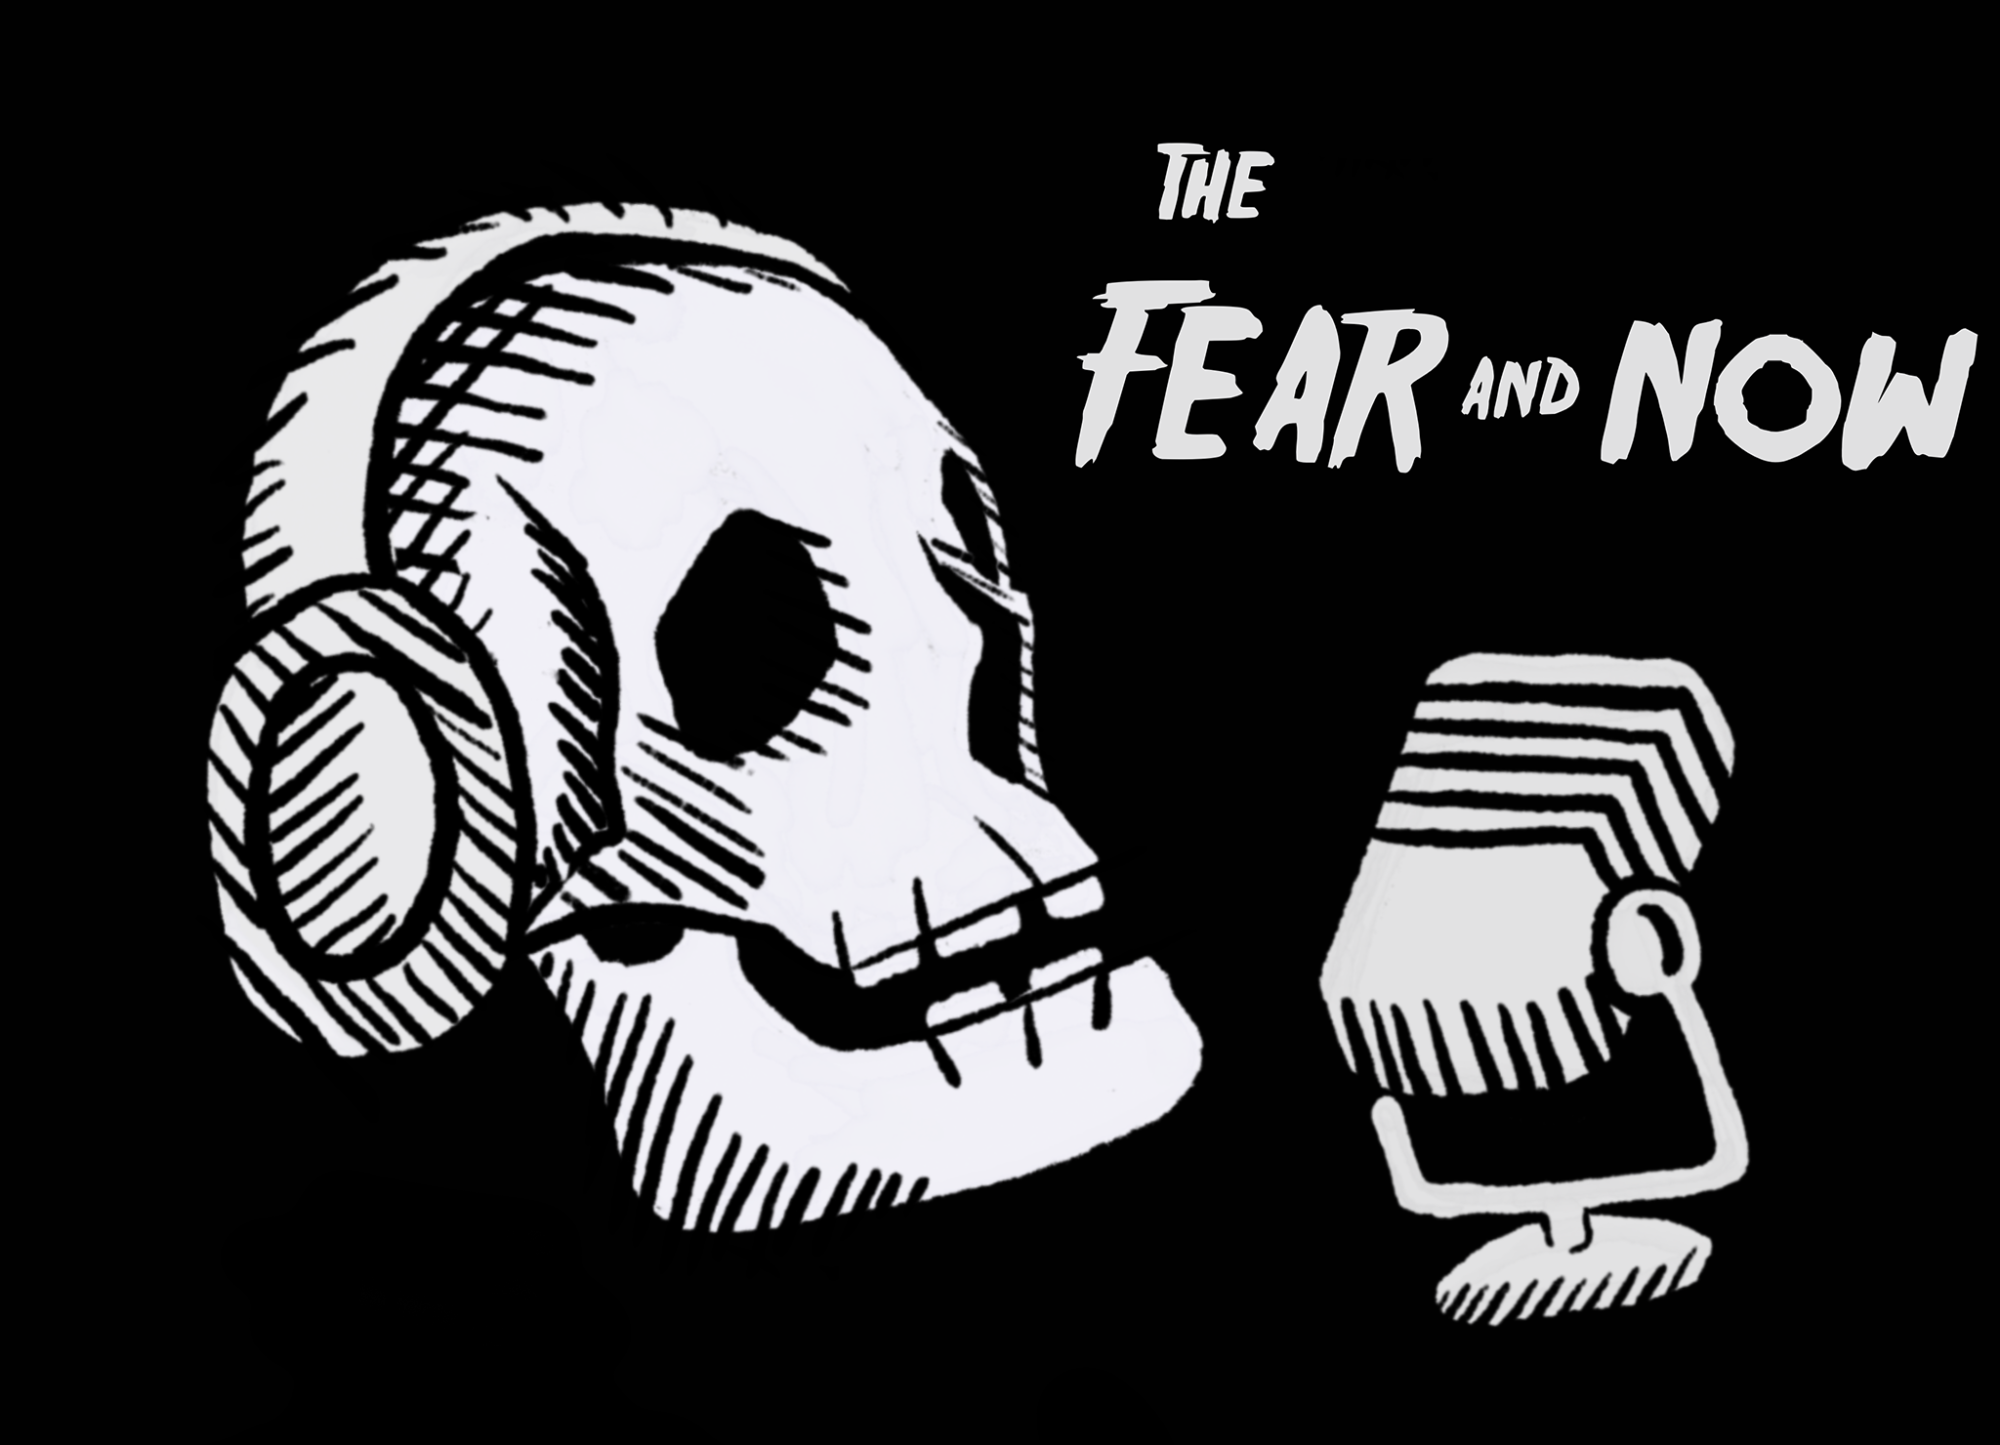 The Fear and Now